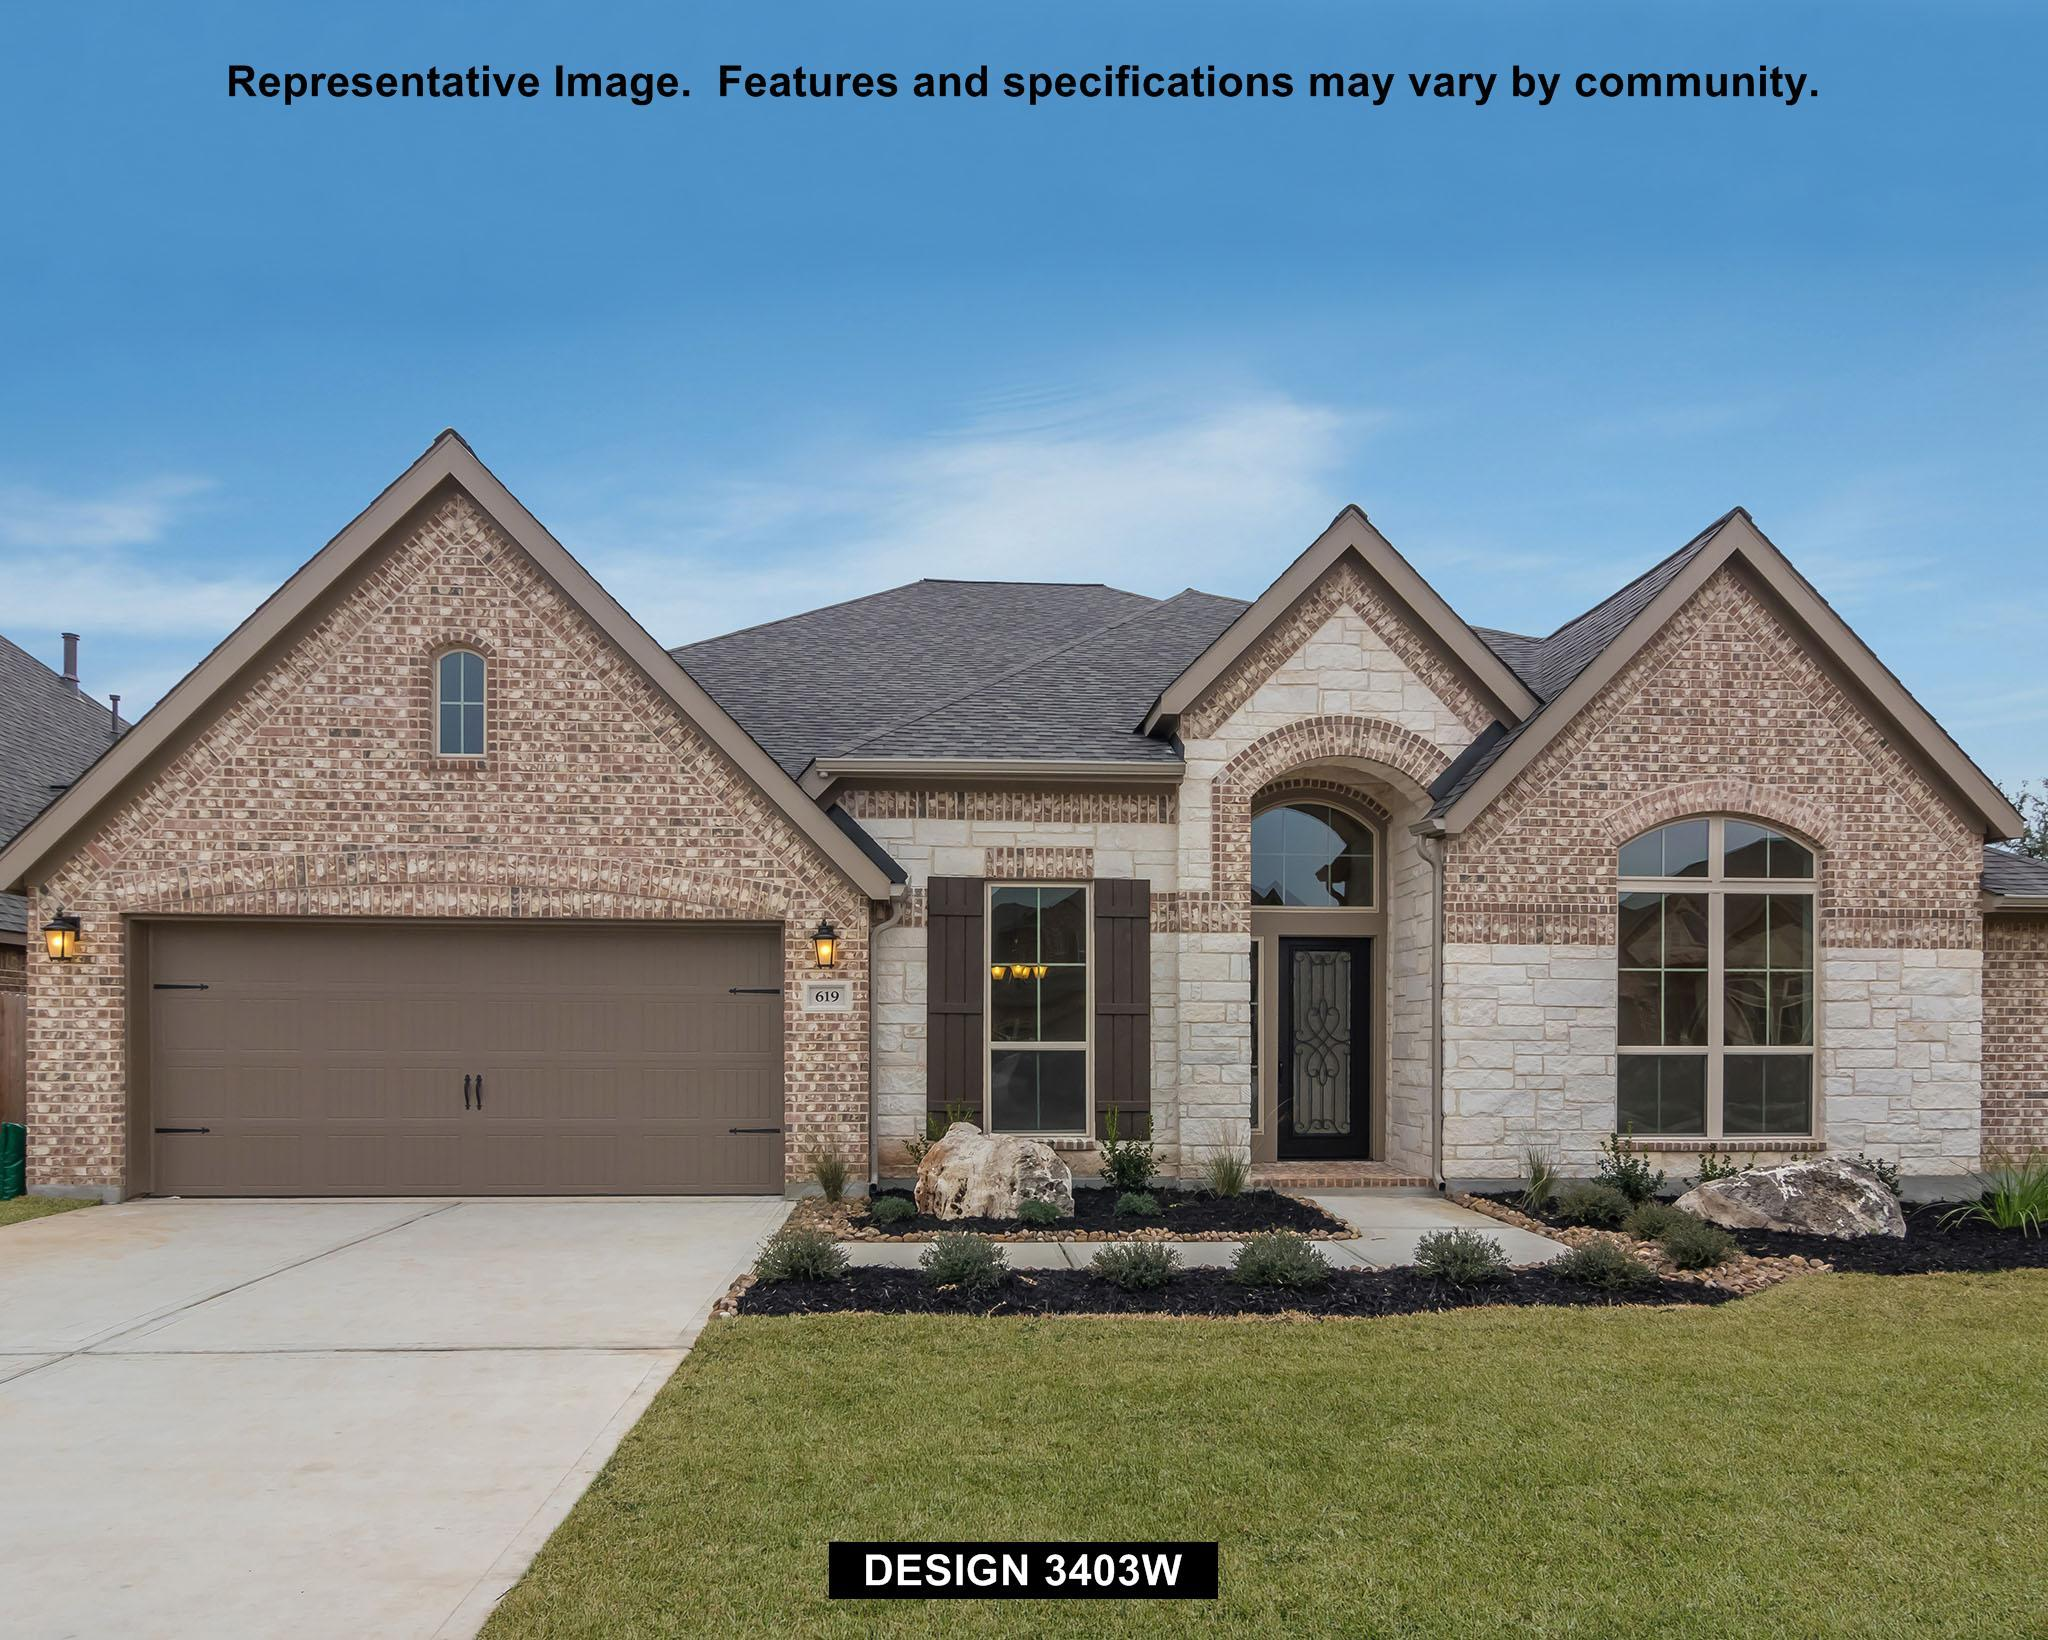 3403W - Oak Run In New Braunfels: New Braunfels, TX - Perry Homes